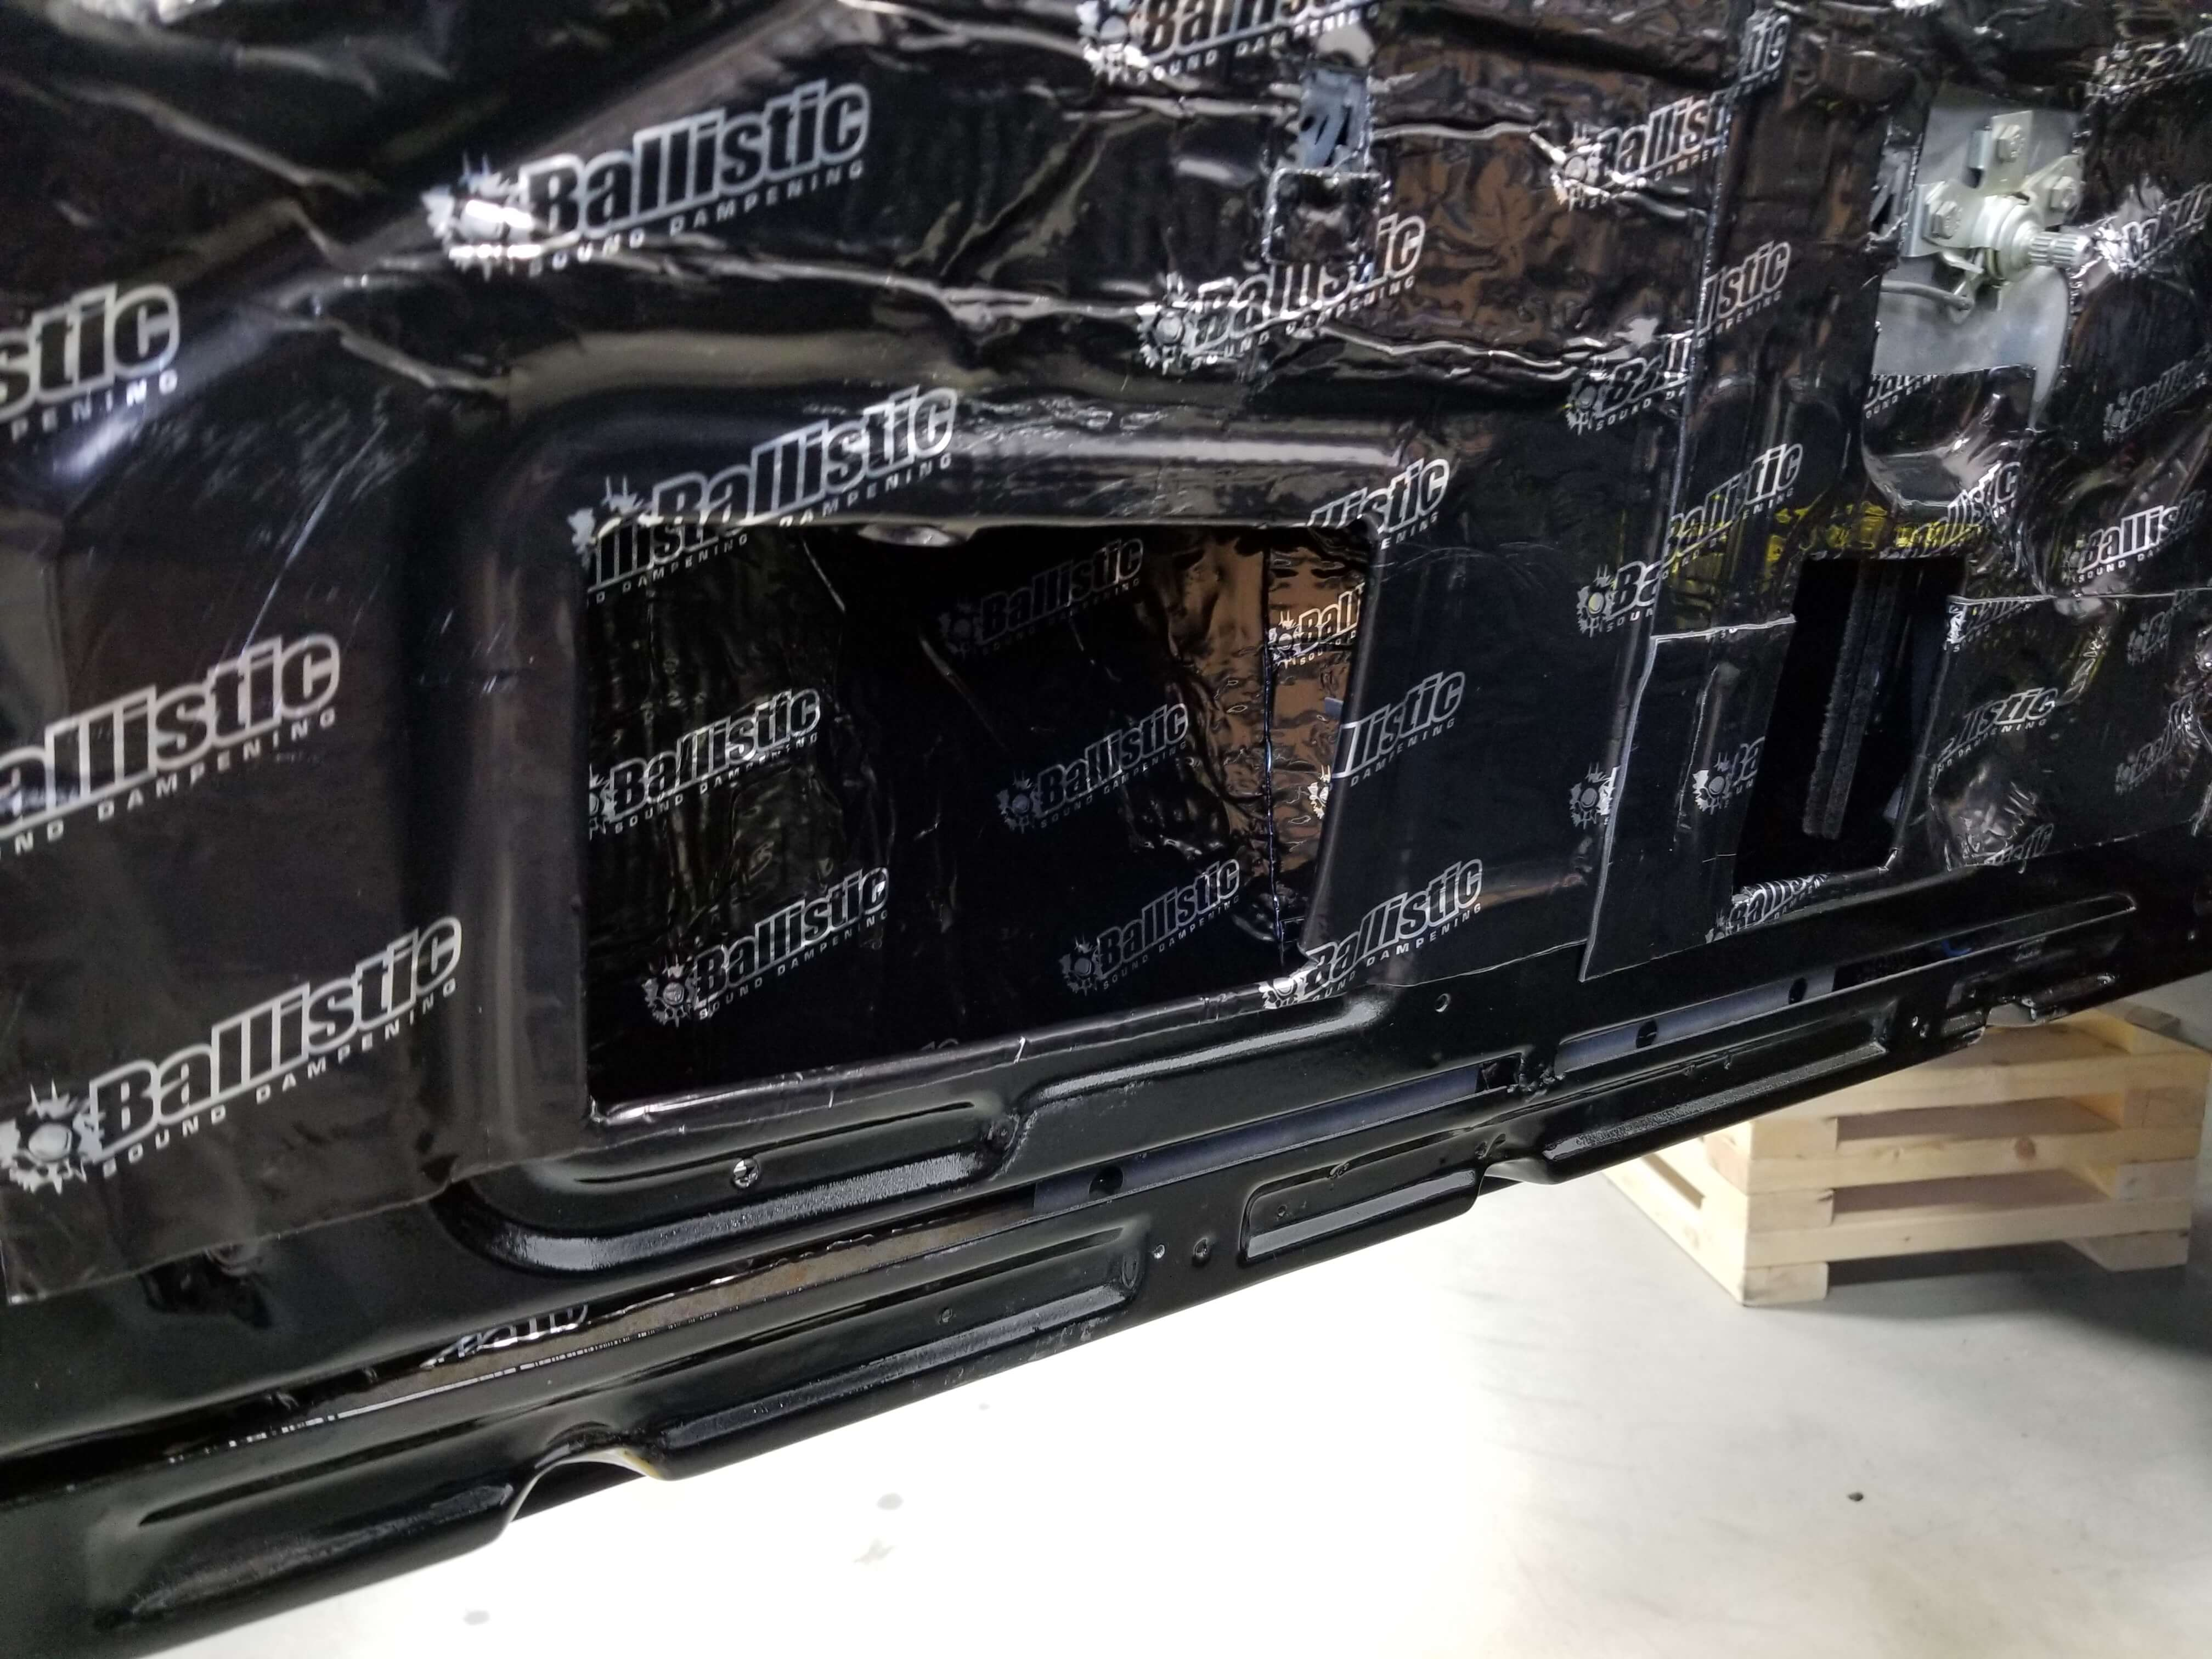 06 car audio sound deadening Ballistic 02